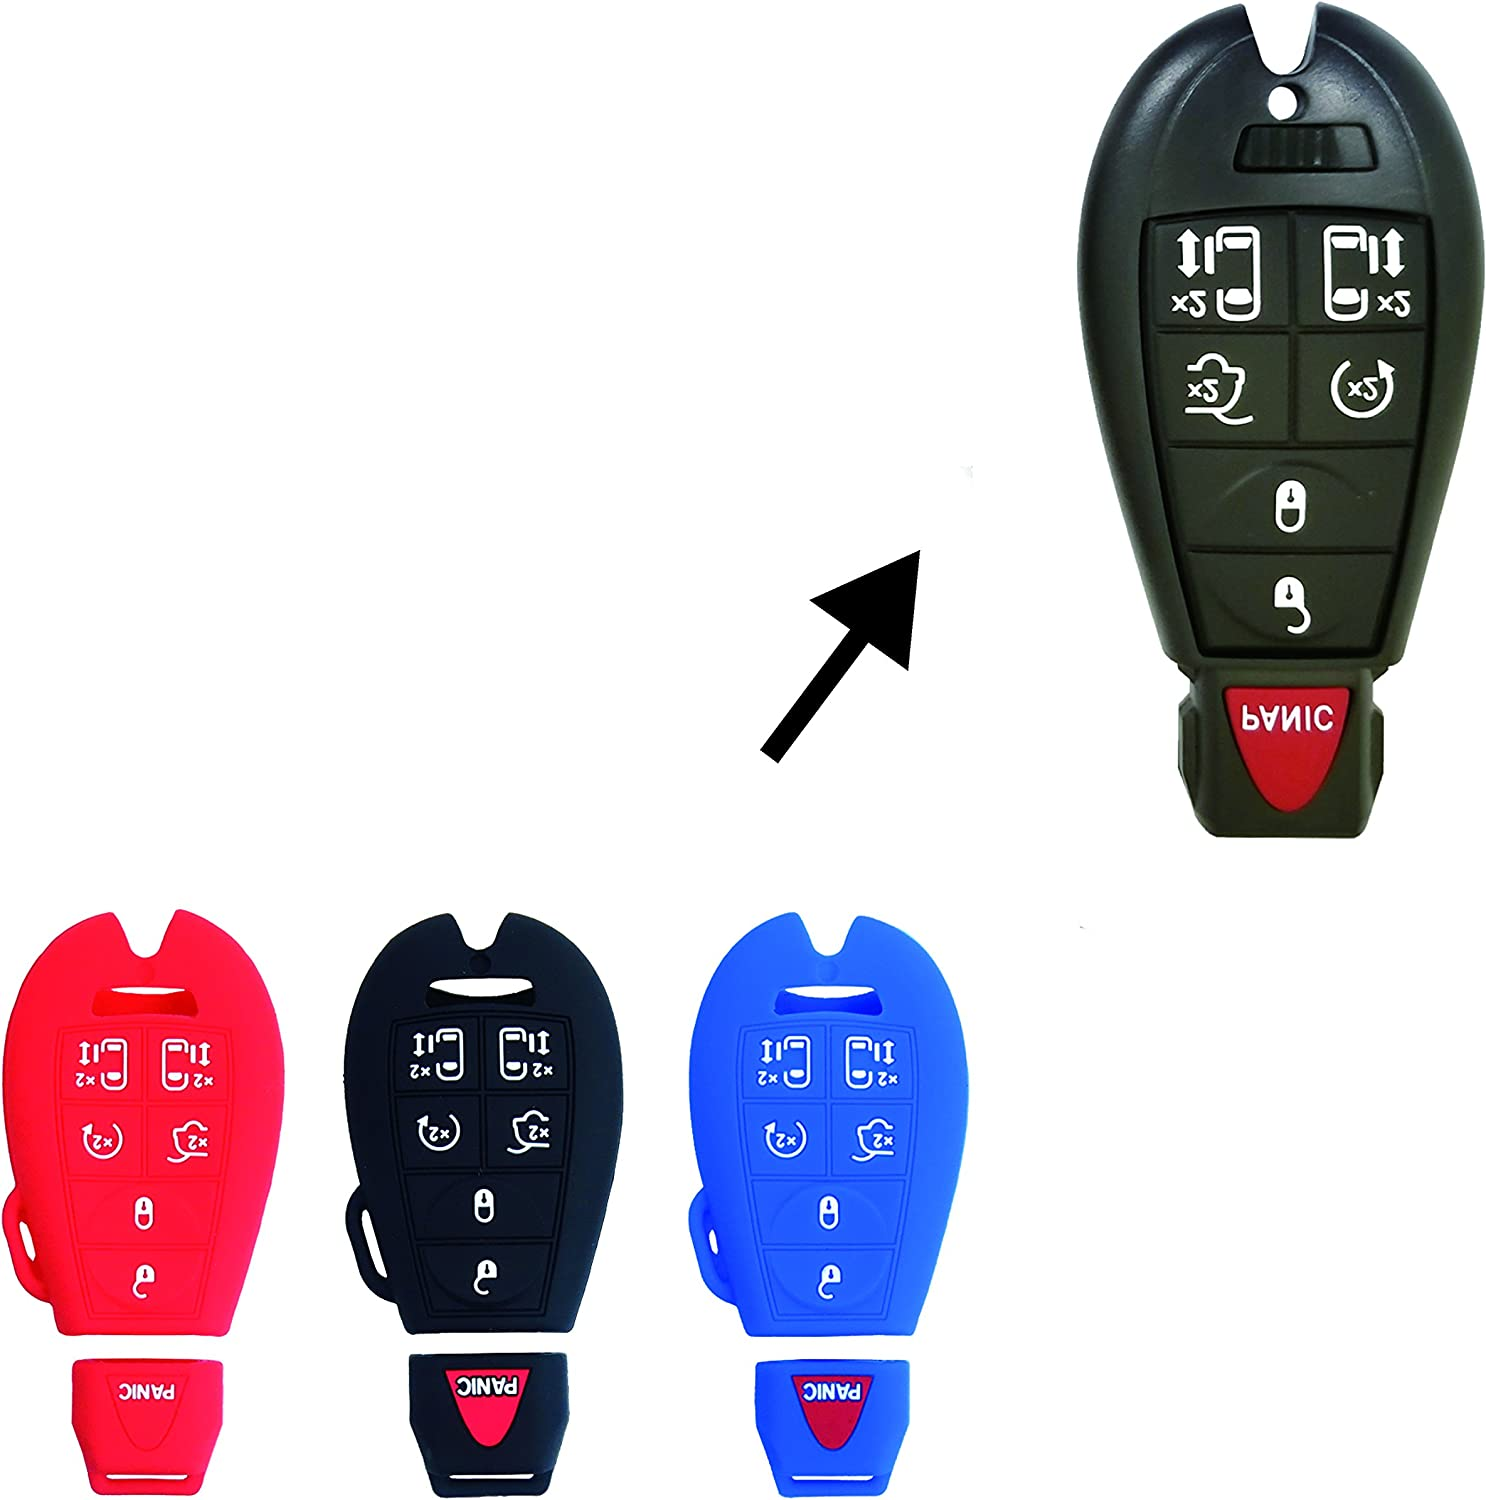 Volkswagen Routan BAR Autotech Remote Key Silicone Rubber Keyless Entry Shell Case Fob and Key Skin Cover fit for Chrysler Town Country Van 1 Pair Dodge Grand Caravan Black+Red